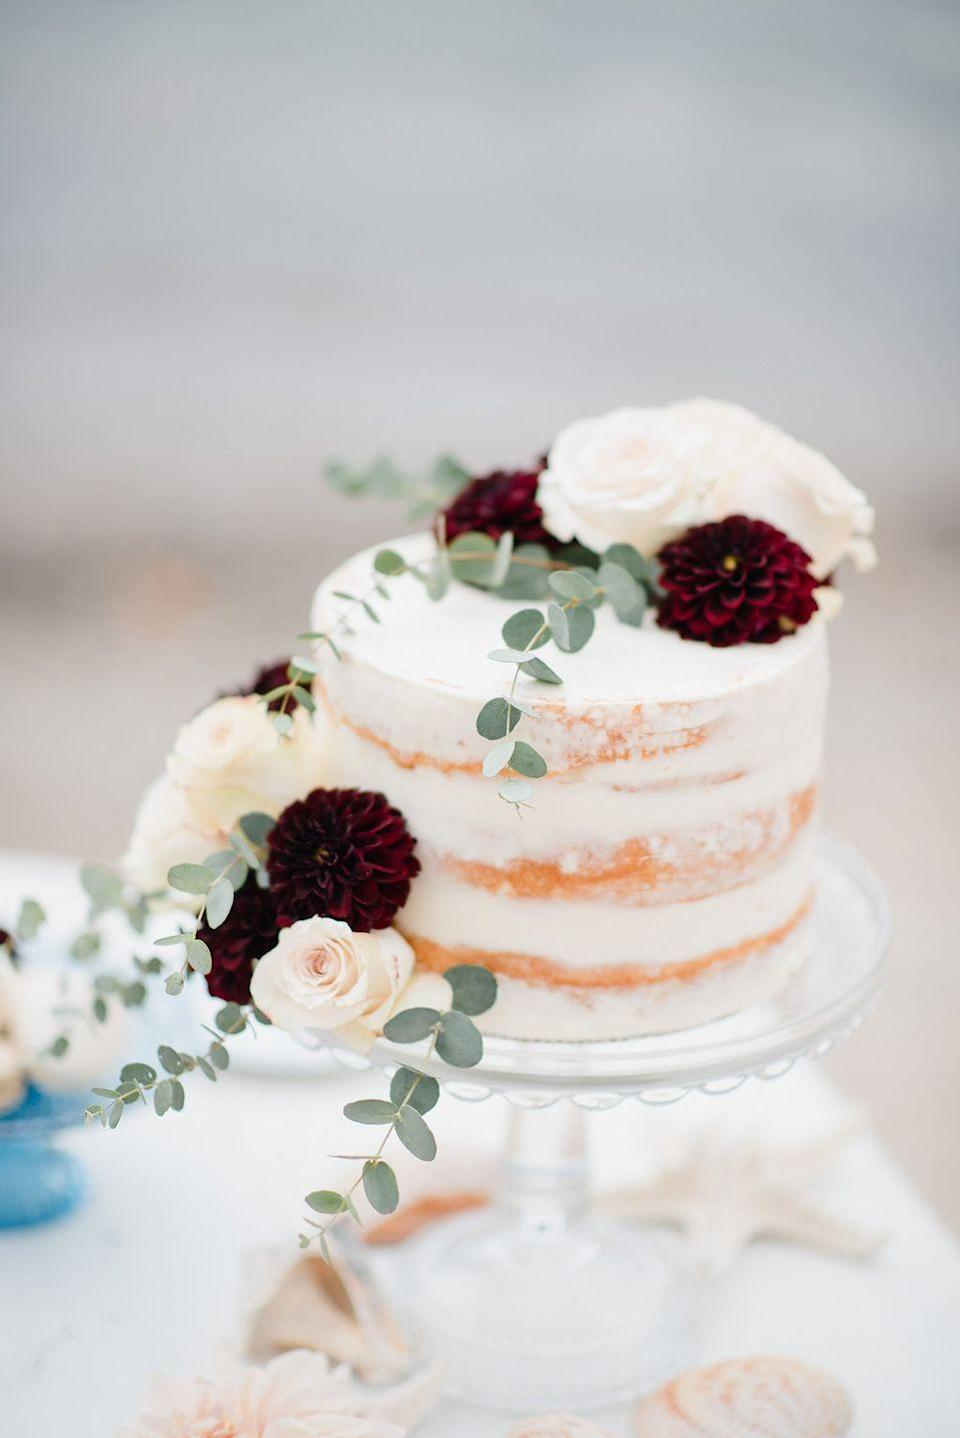 """<p>Deep red and blush blooms paired with fresh eucalyptus dresses up this small fall wedding cake by <a href=""""https://www.kelseyelizabethcakes.com/"""" rel=""""nofollow noopener"""" target=""""_blank"""" data-ylk=""""slk:Kelsey Elizabeth Cakes"""" class=""""link rapid-noclick-resp"""">Kelsey Elizabeth Cakes</a>.</p>"""